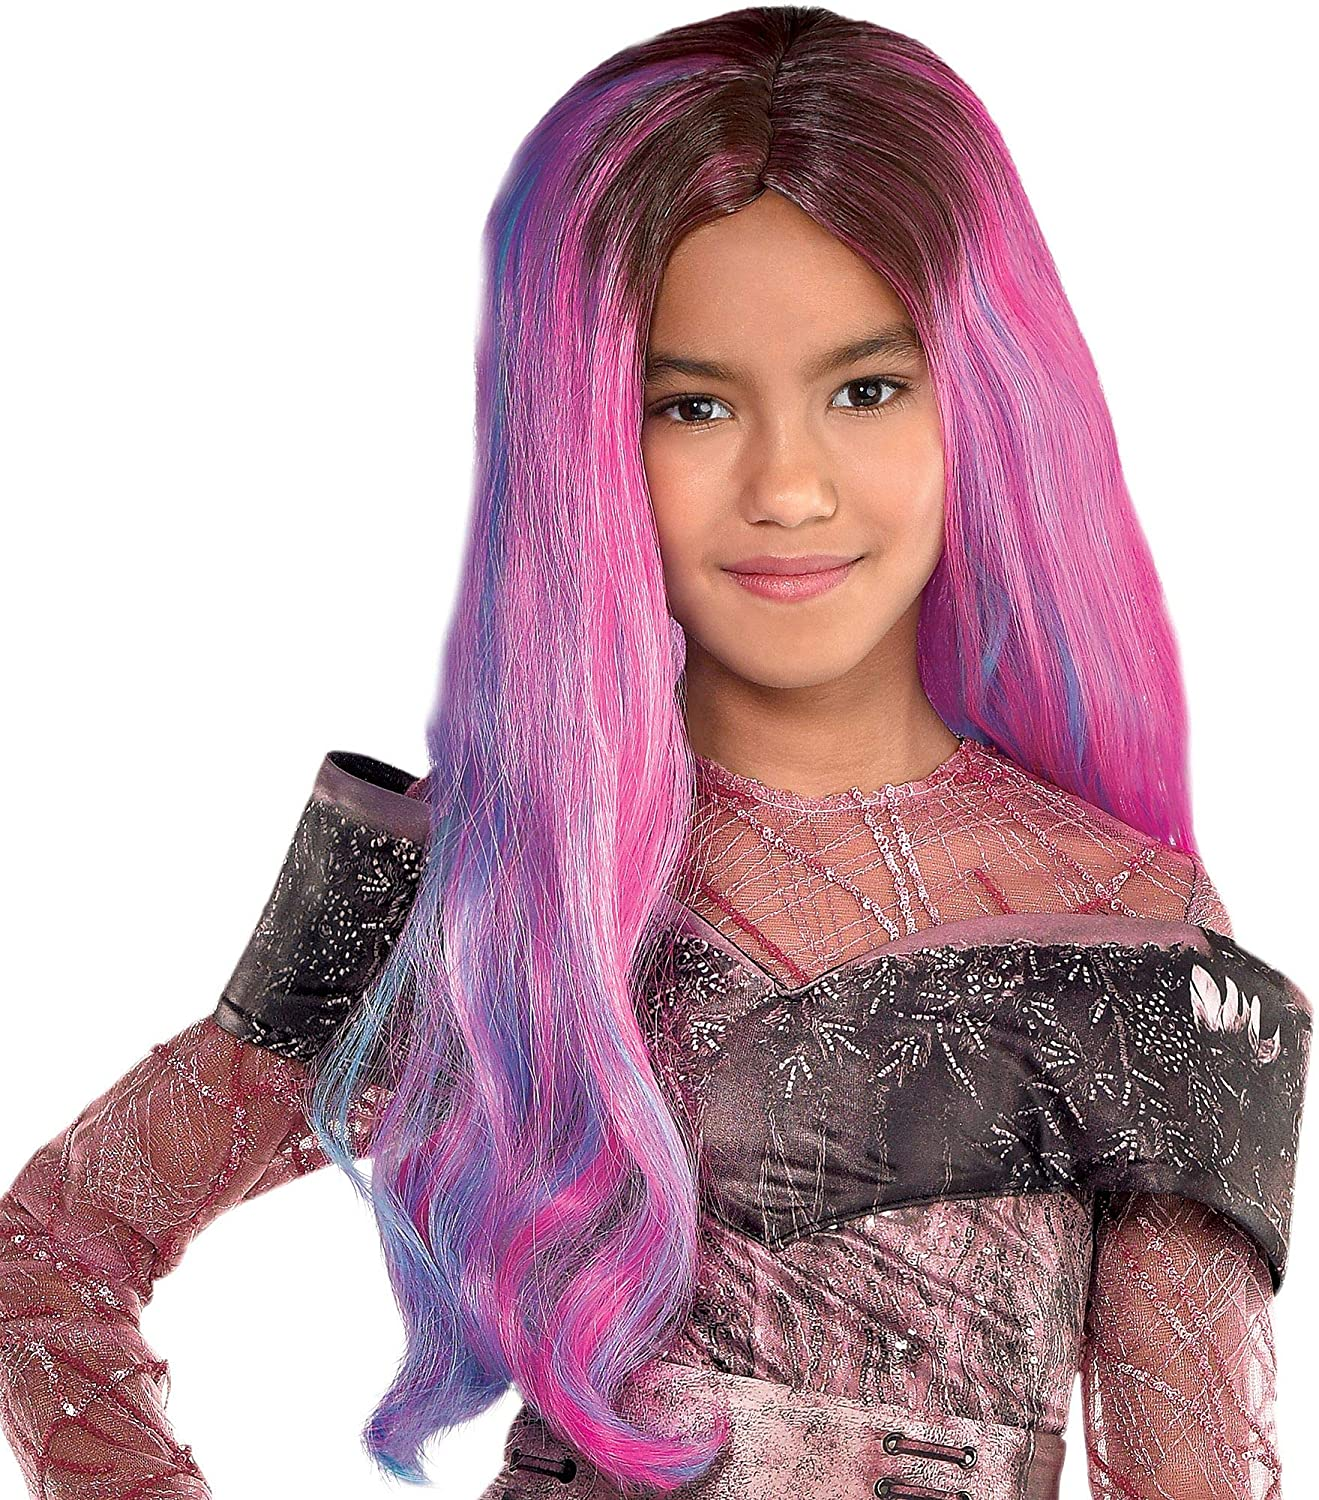 Party City Descendants 3 Audrey Wig Halloween Costume Accessory for Girls, One Size